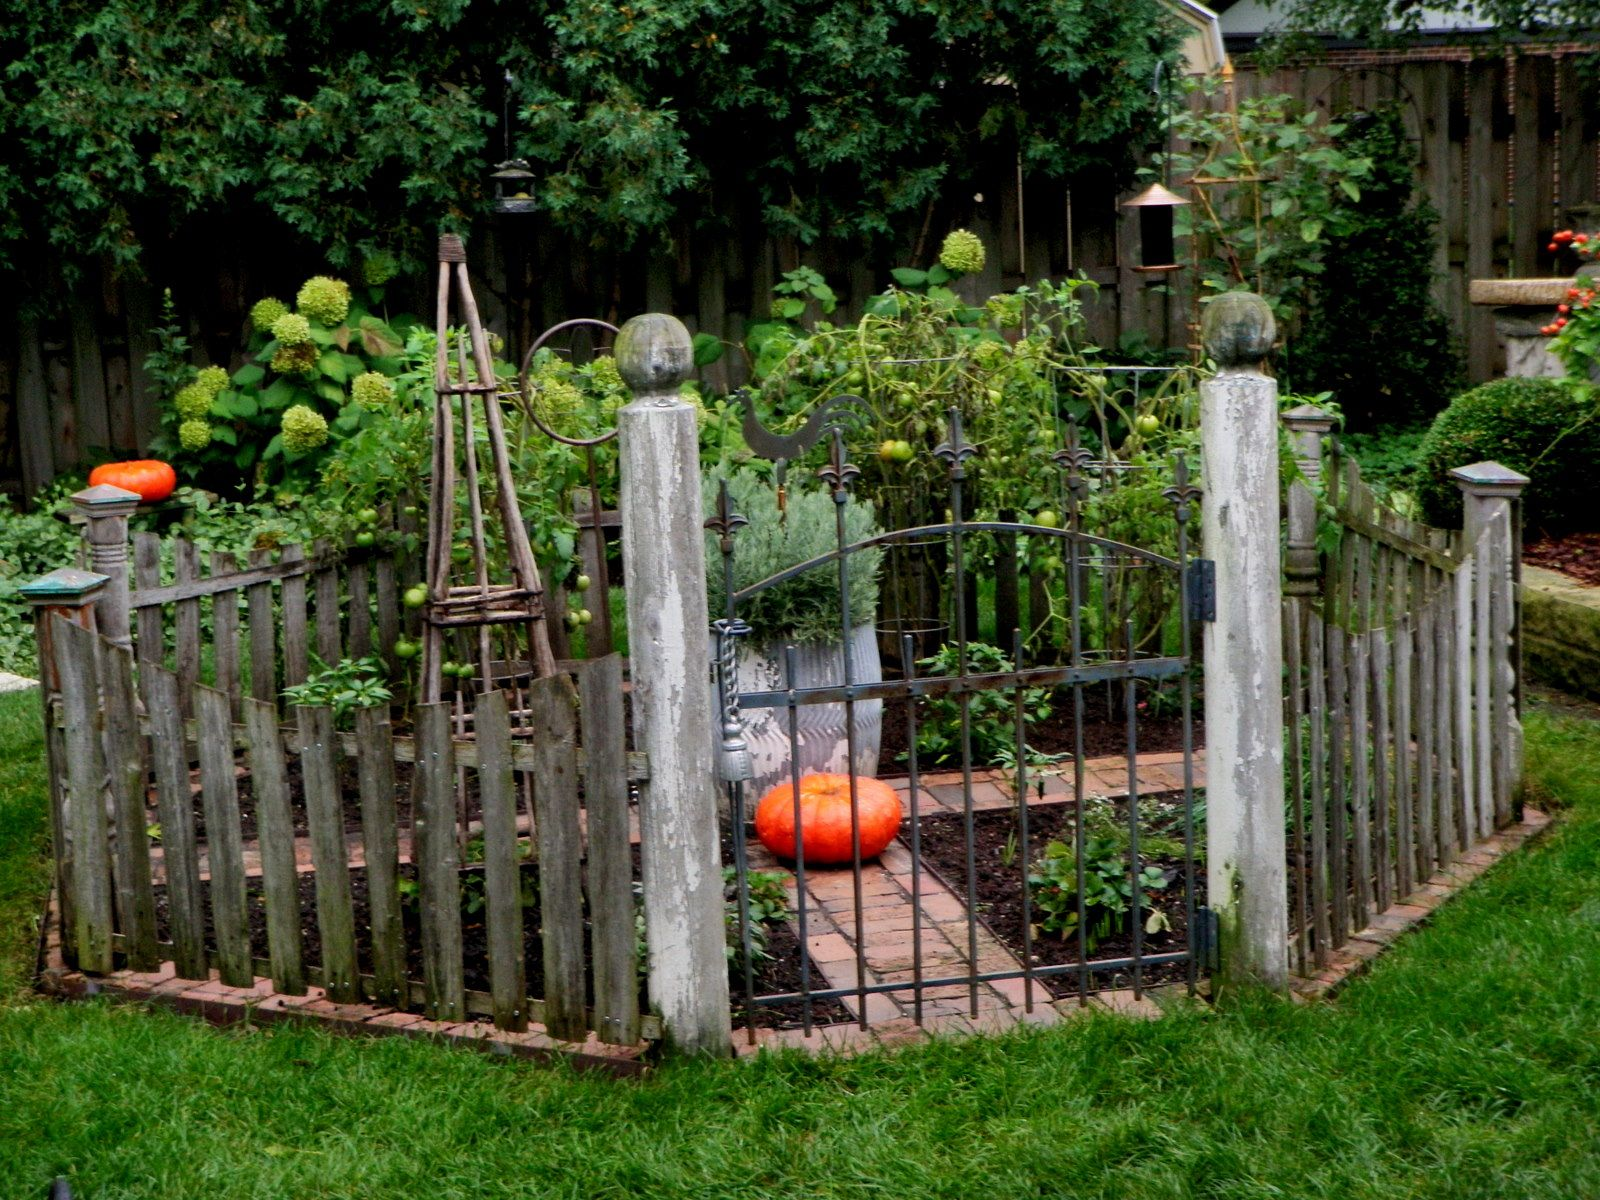 Little Veggie Patch #garden #fence #gate #small #tiny #lawn